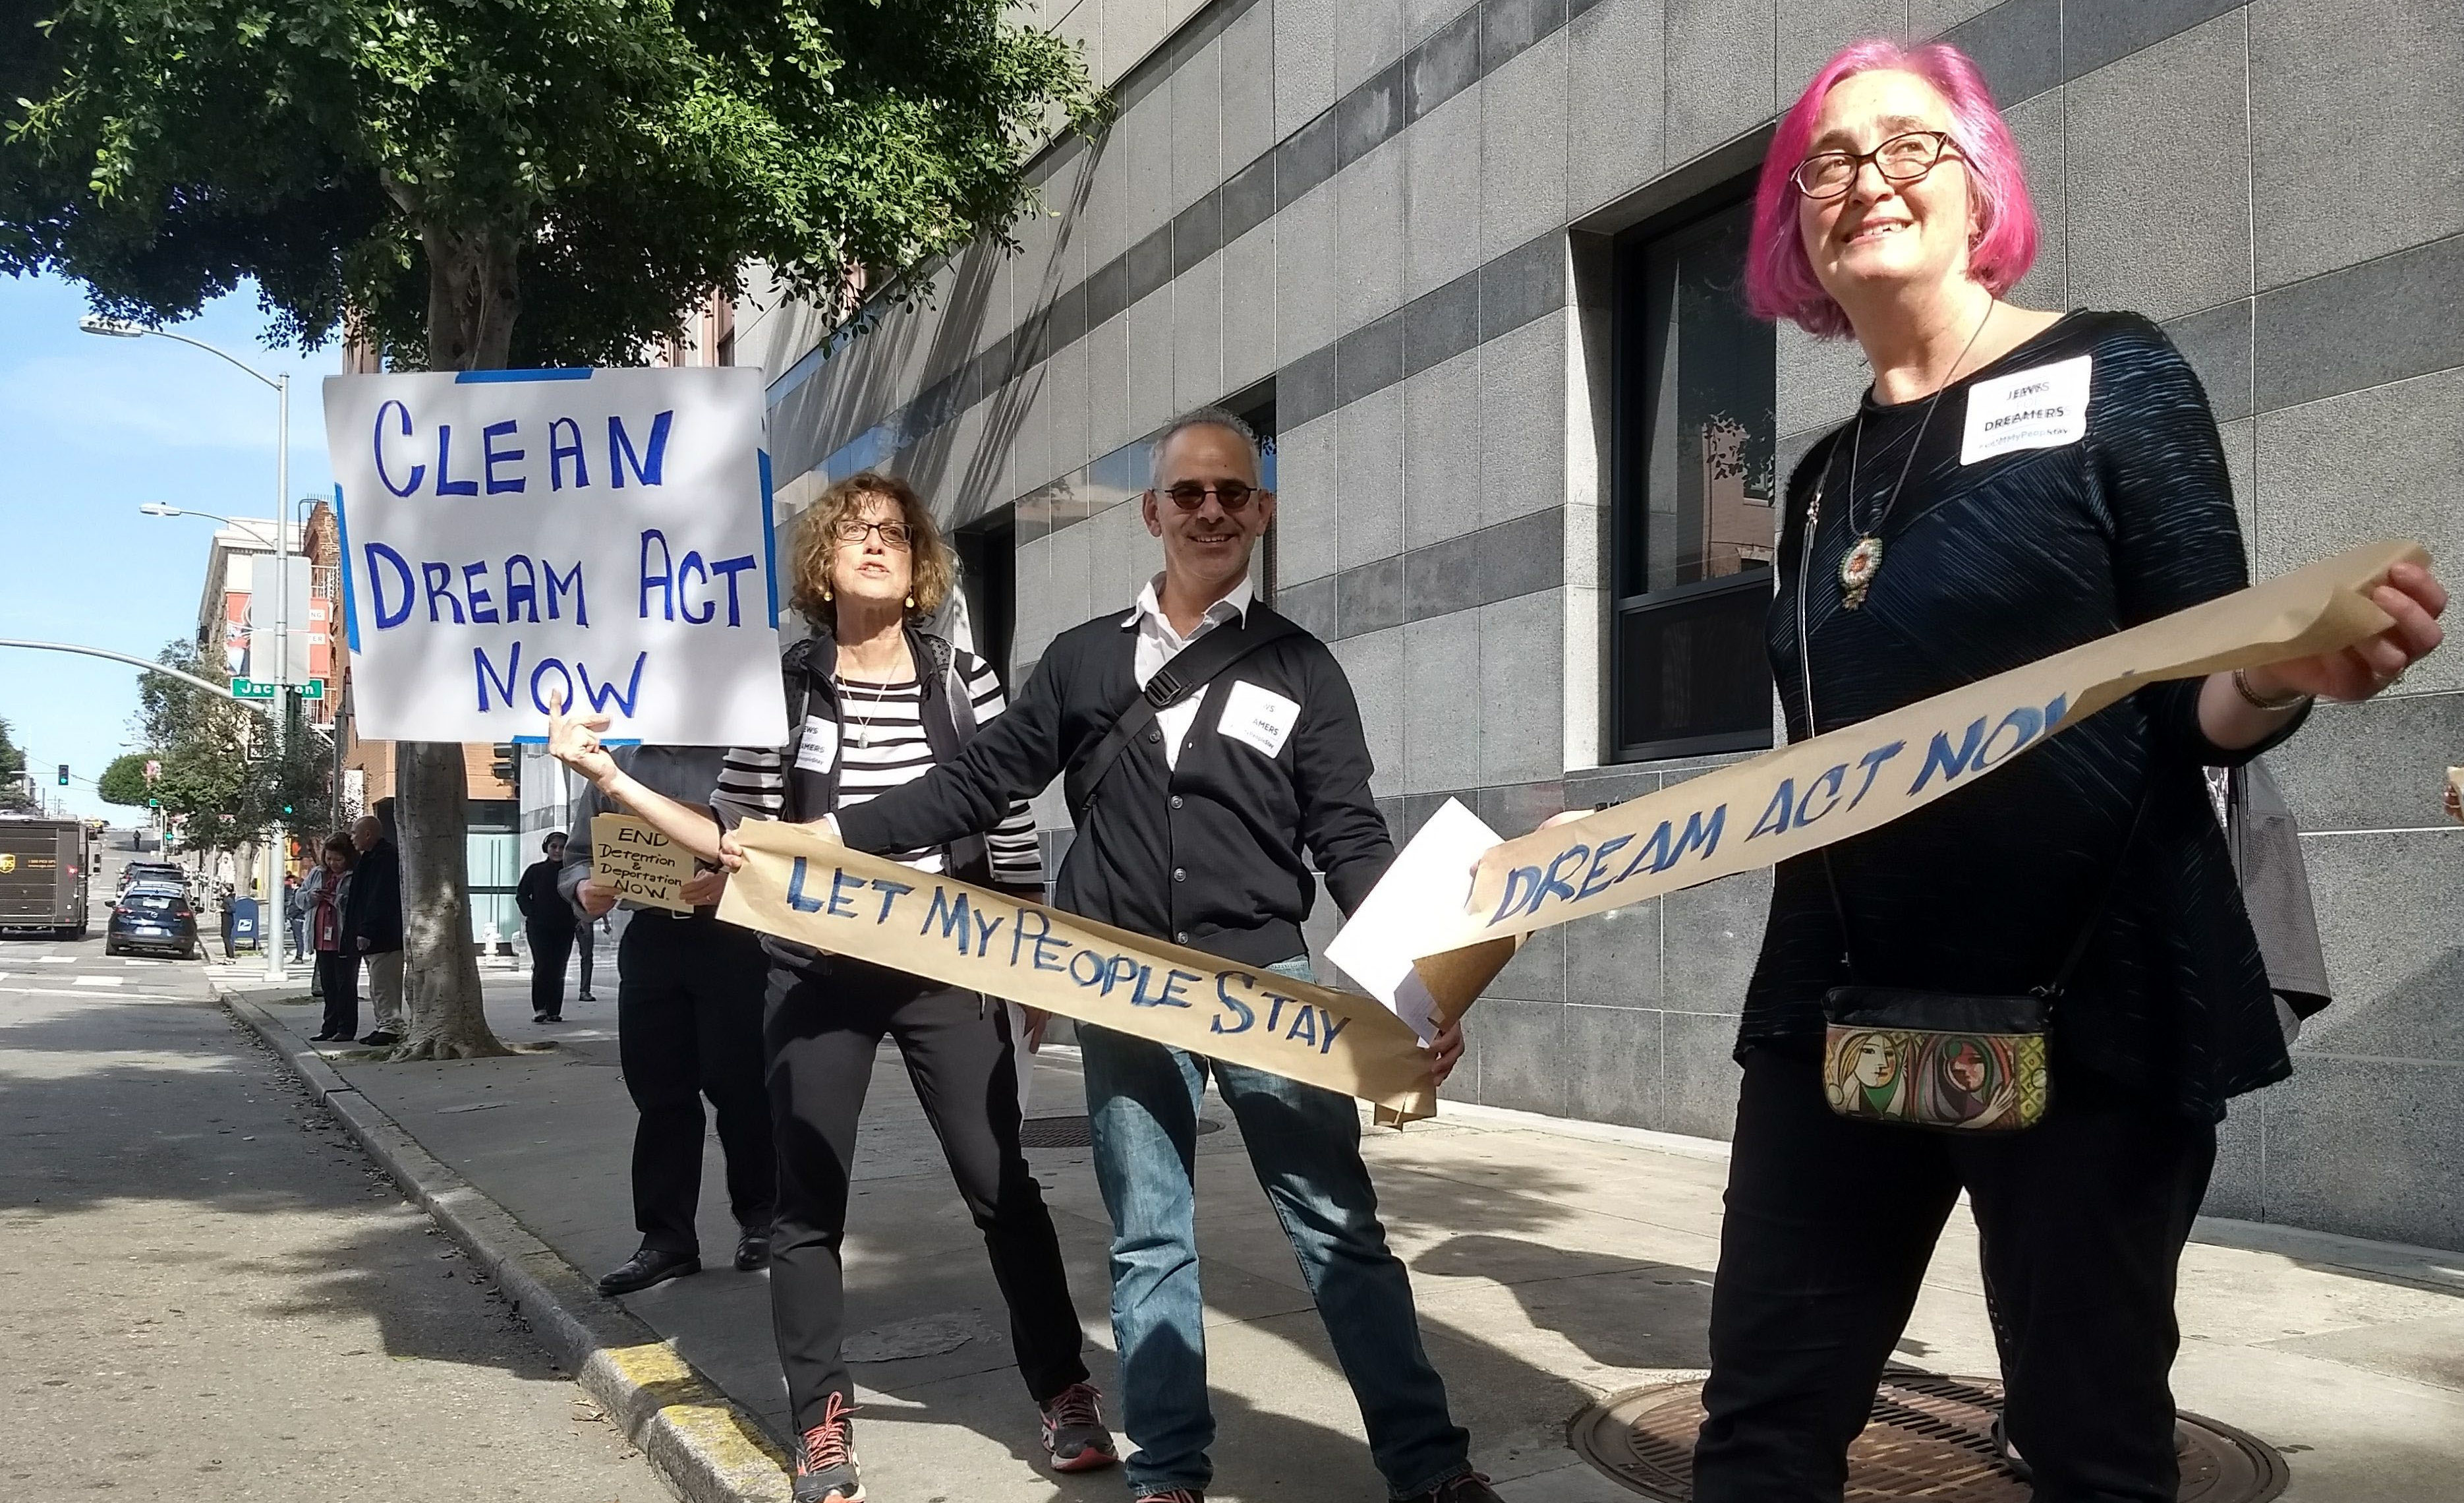 Jewish supporters of legislation to continue DACA protesting outside the downtown San Francisco office of Immigration and Customs Enforcement, Feb. 5, 2018. (Photo/Maya Mirsky)